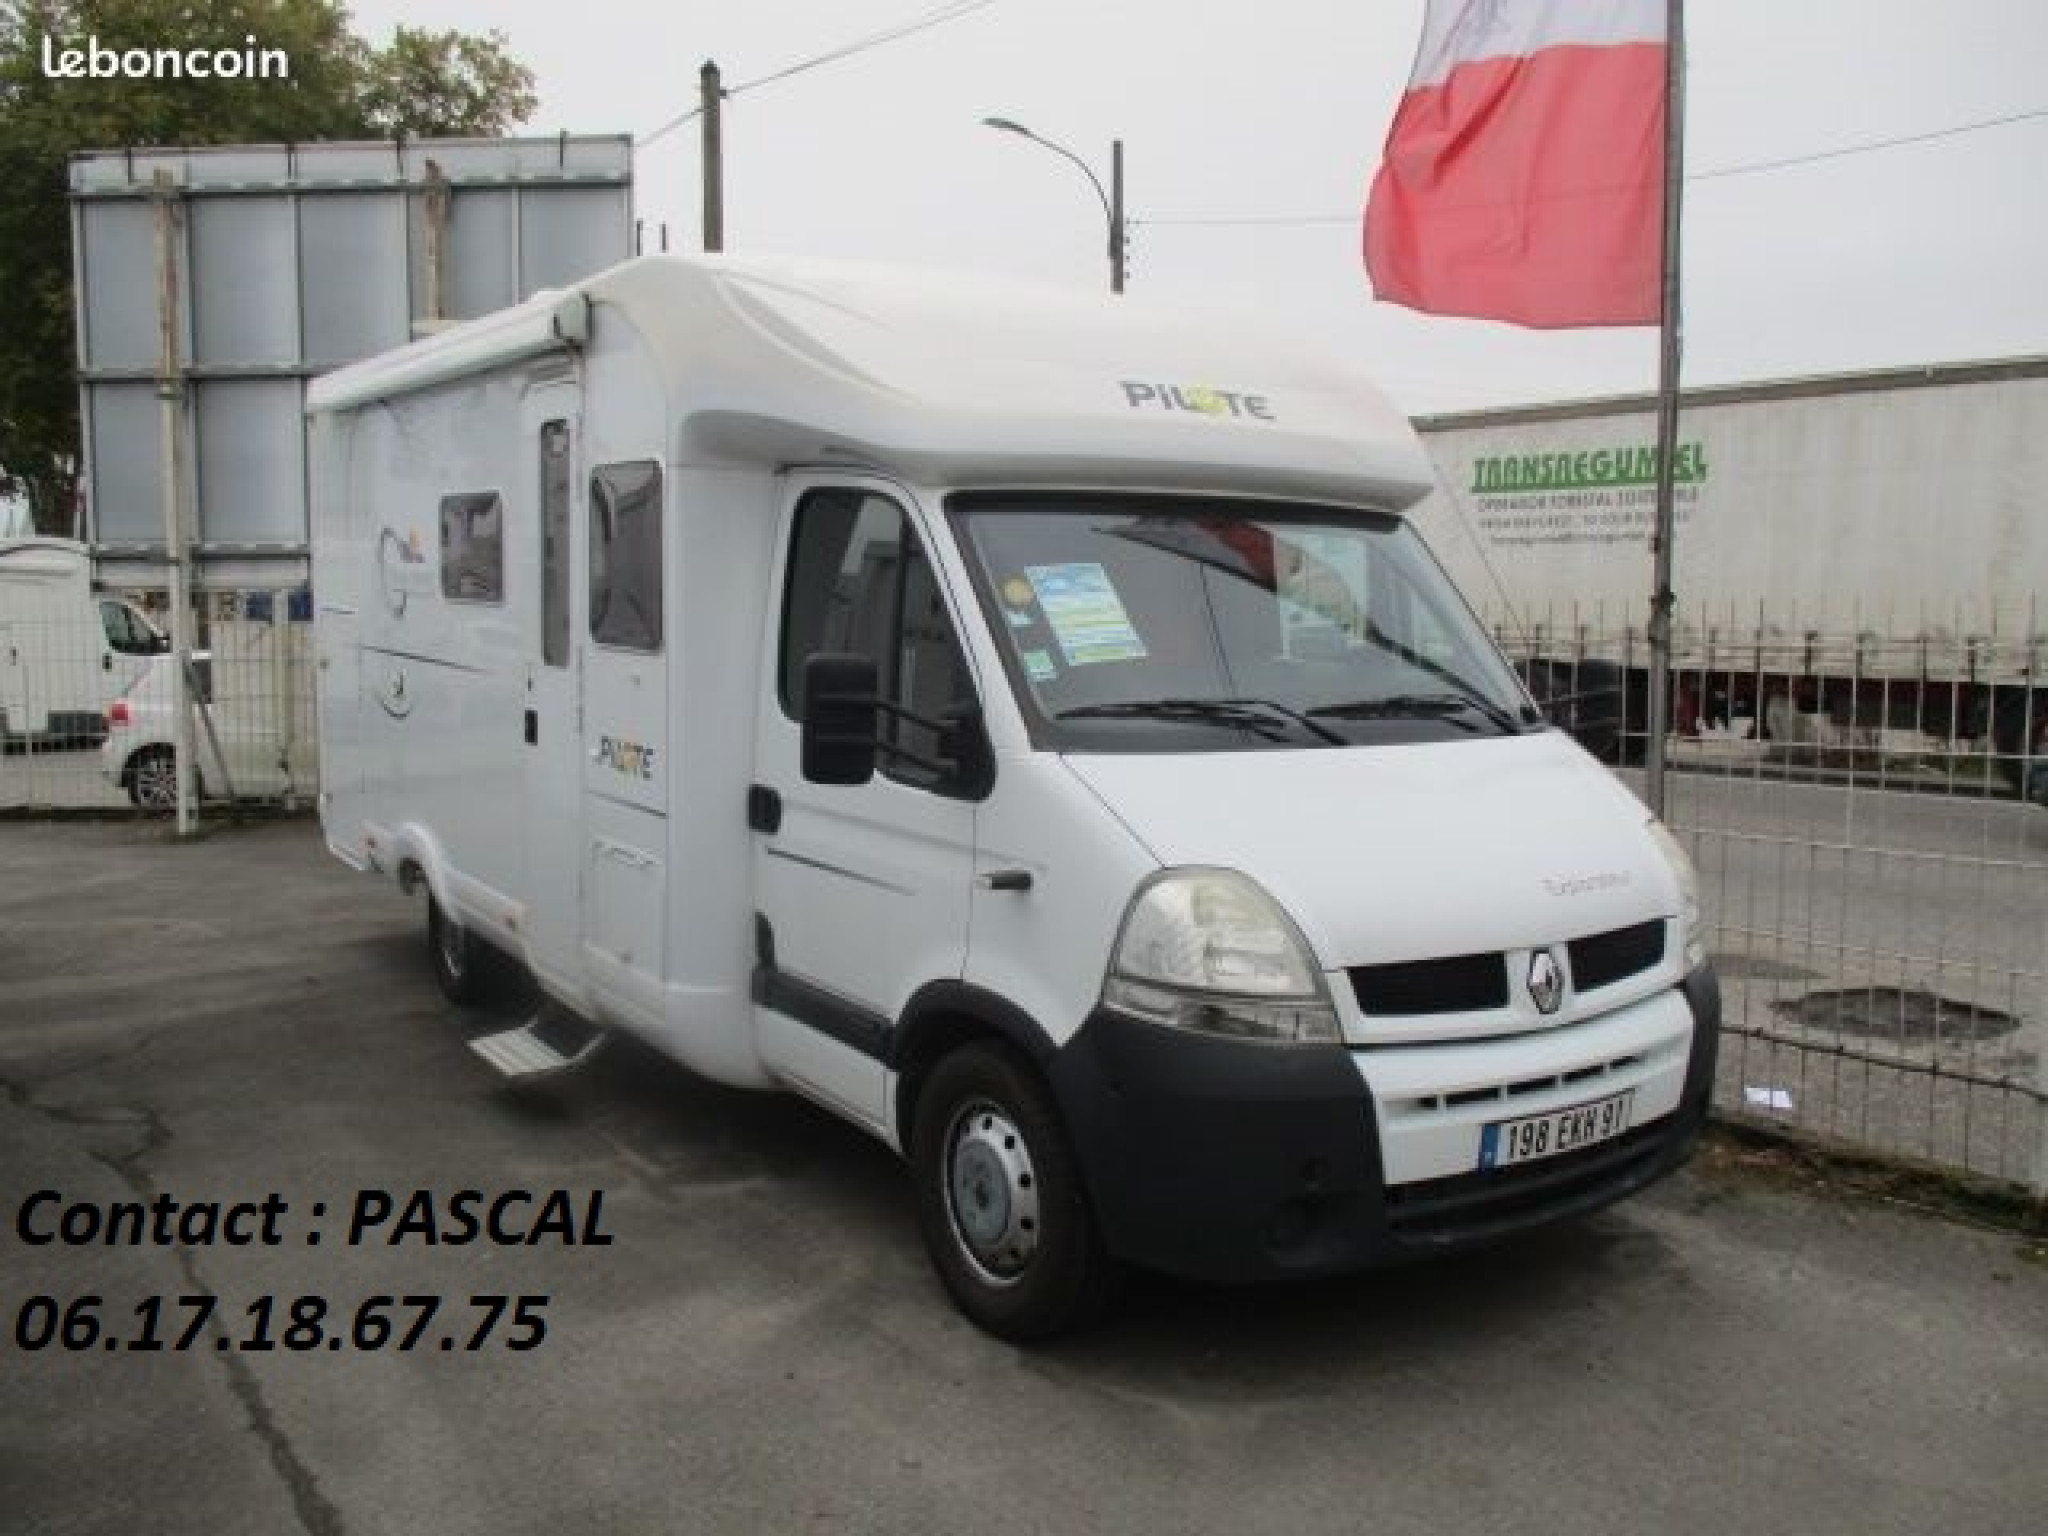 Camping-car PILOTE Pilote explorateur 685 fg - lit transversal sur so